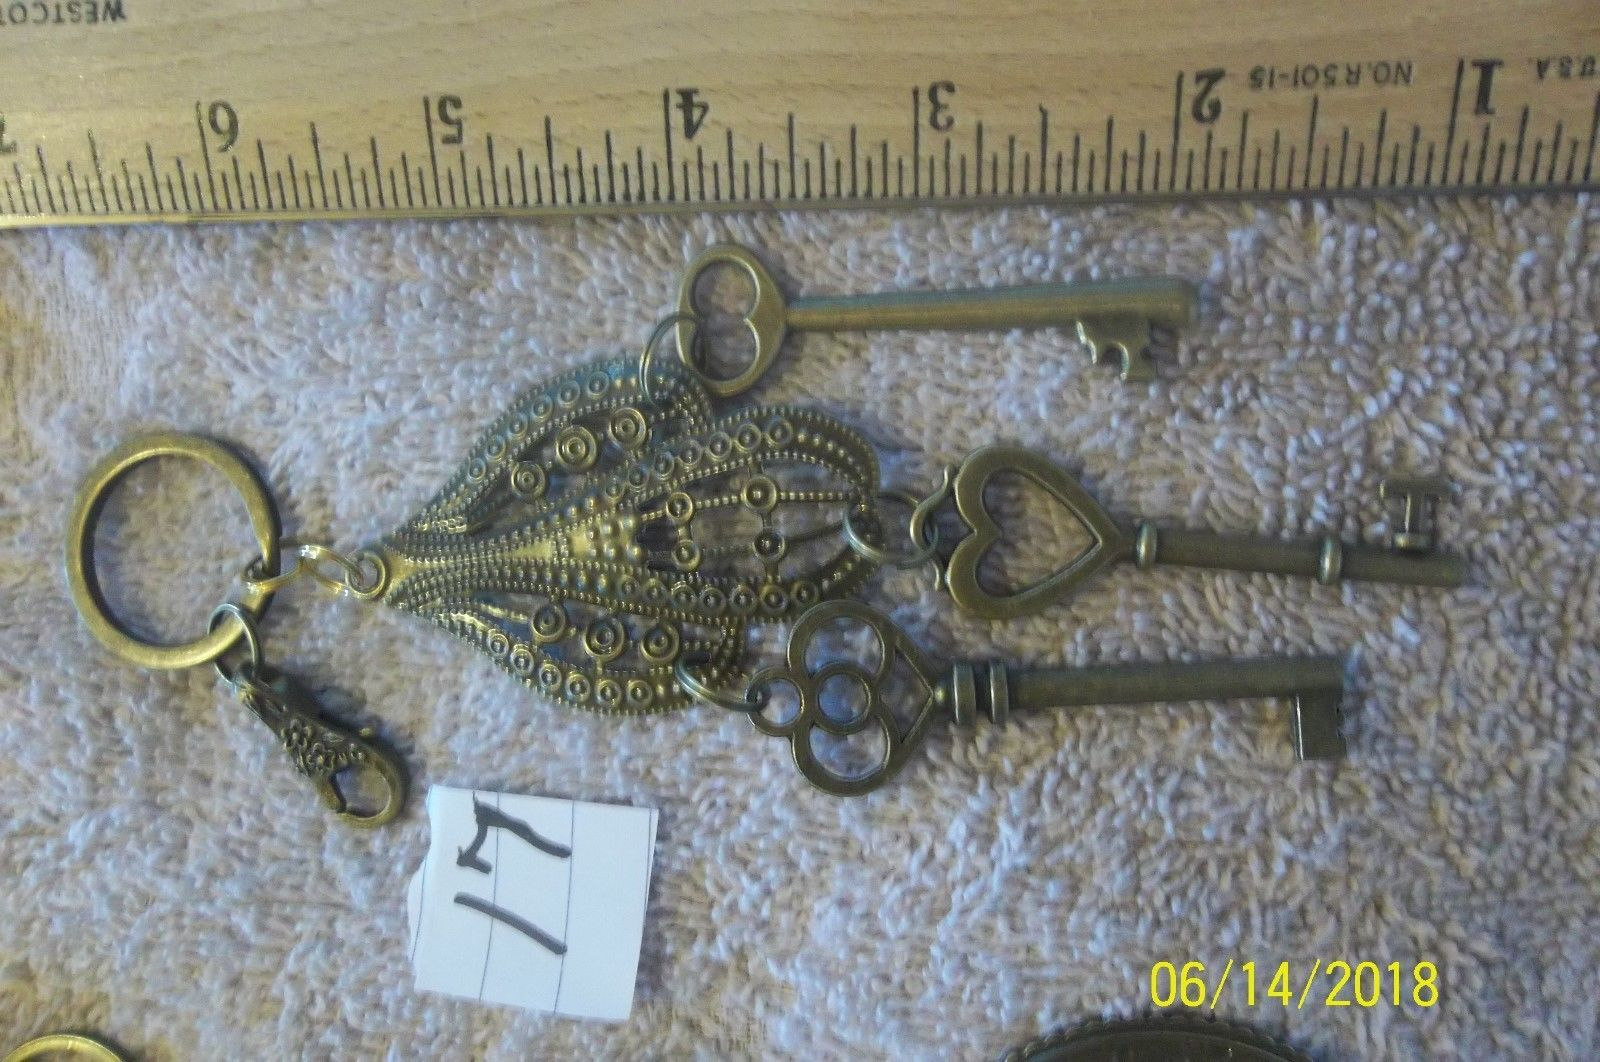 # purse jewelry bronze color keychain backpack  dangle charms #17 lot of 2 image 3